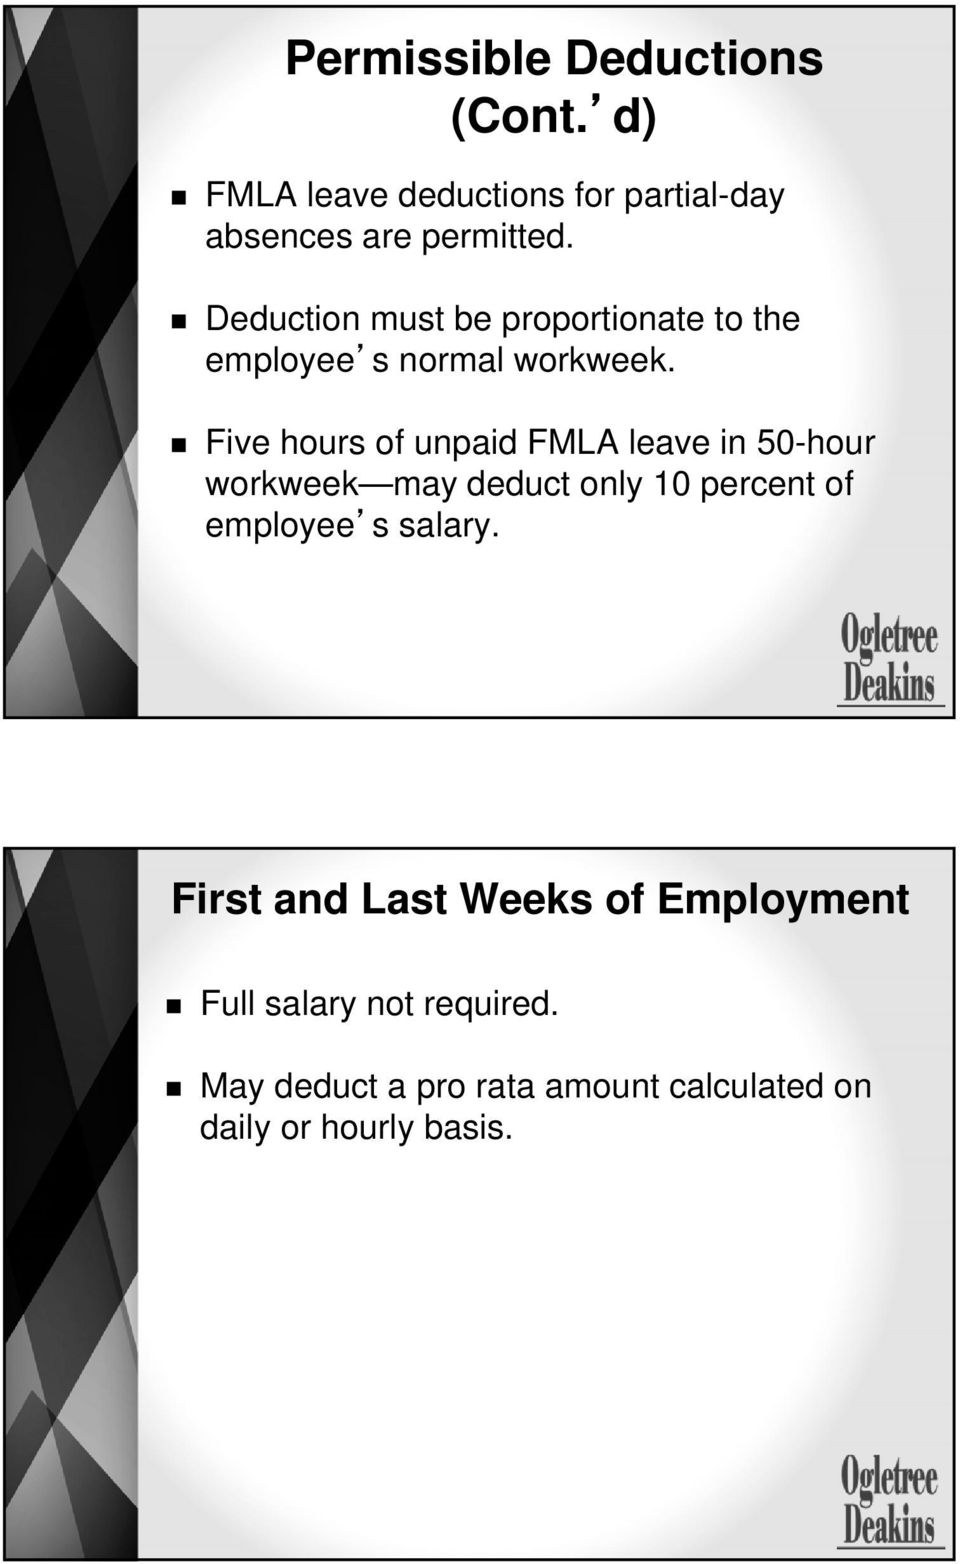 Five hours of unpaid FMLA leave in 50-hour workweek may deduct only 10 percent of employee s